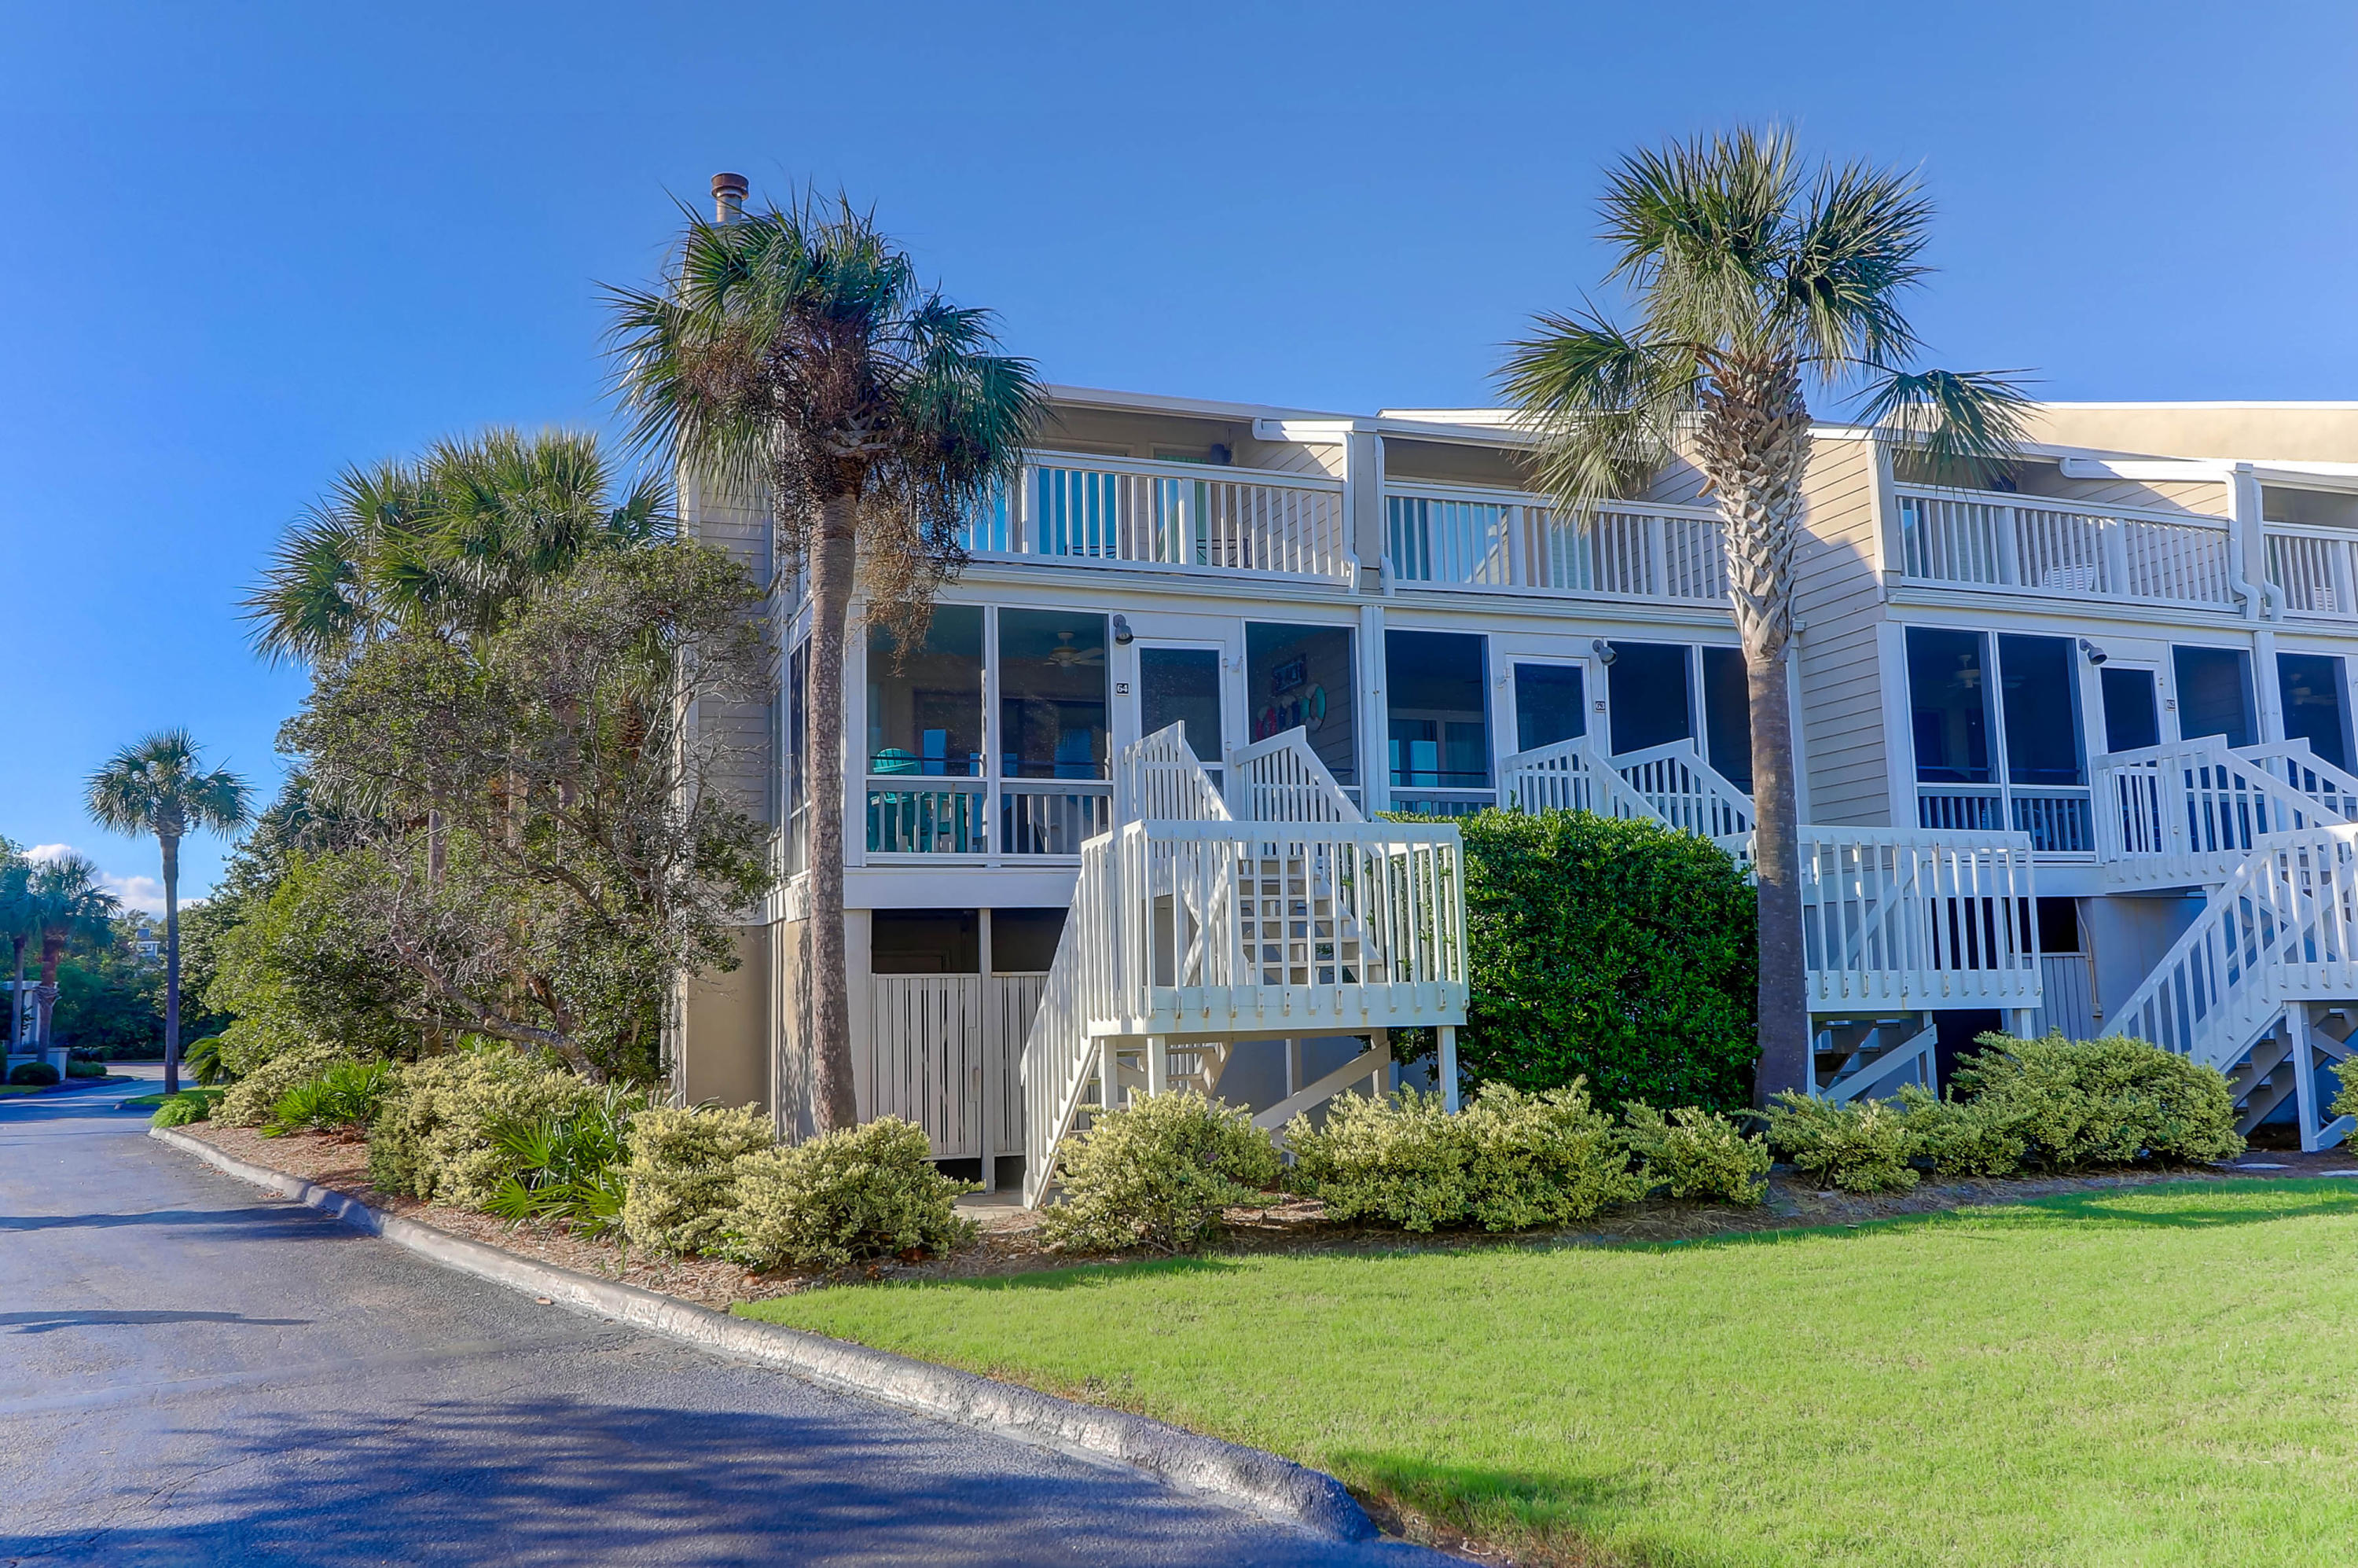 64 Beach Club UNIT #64 Isle Of Palms, SC 29451